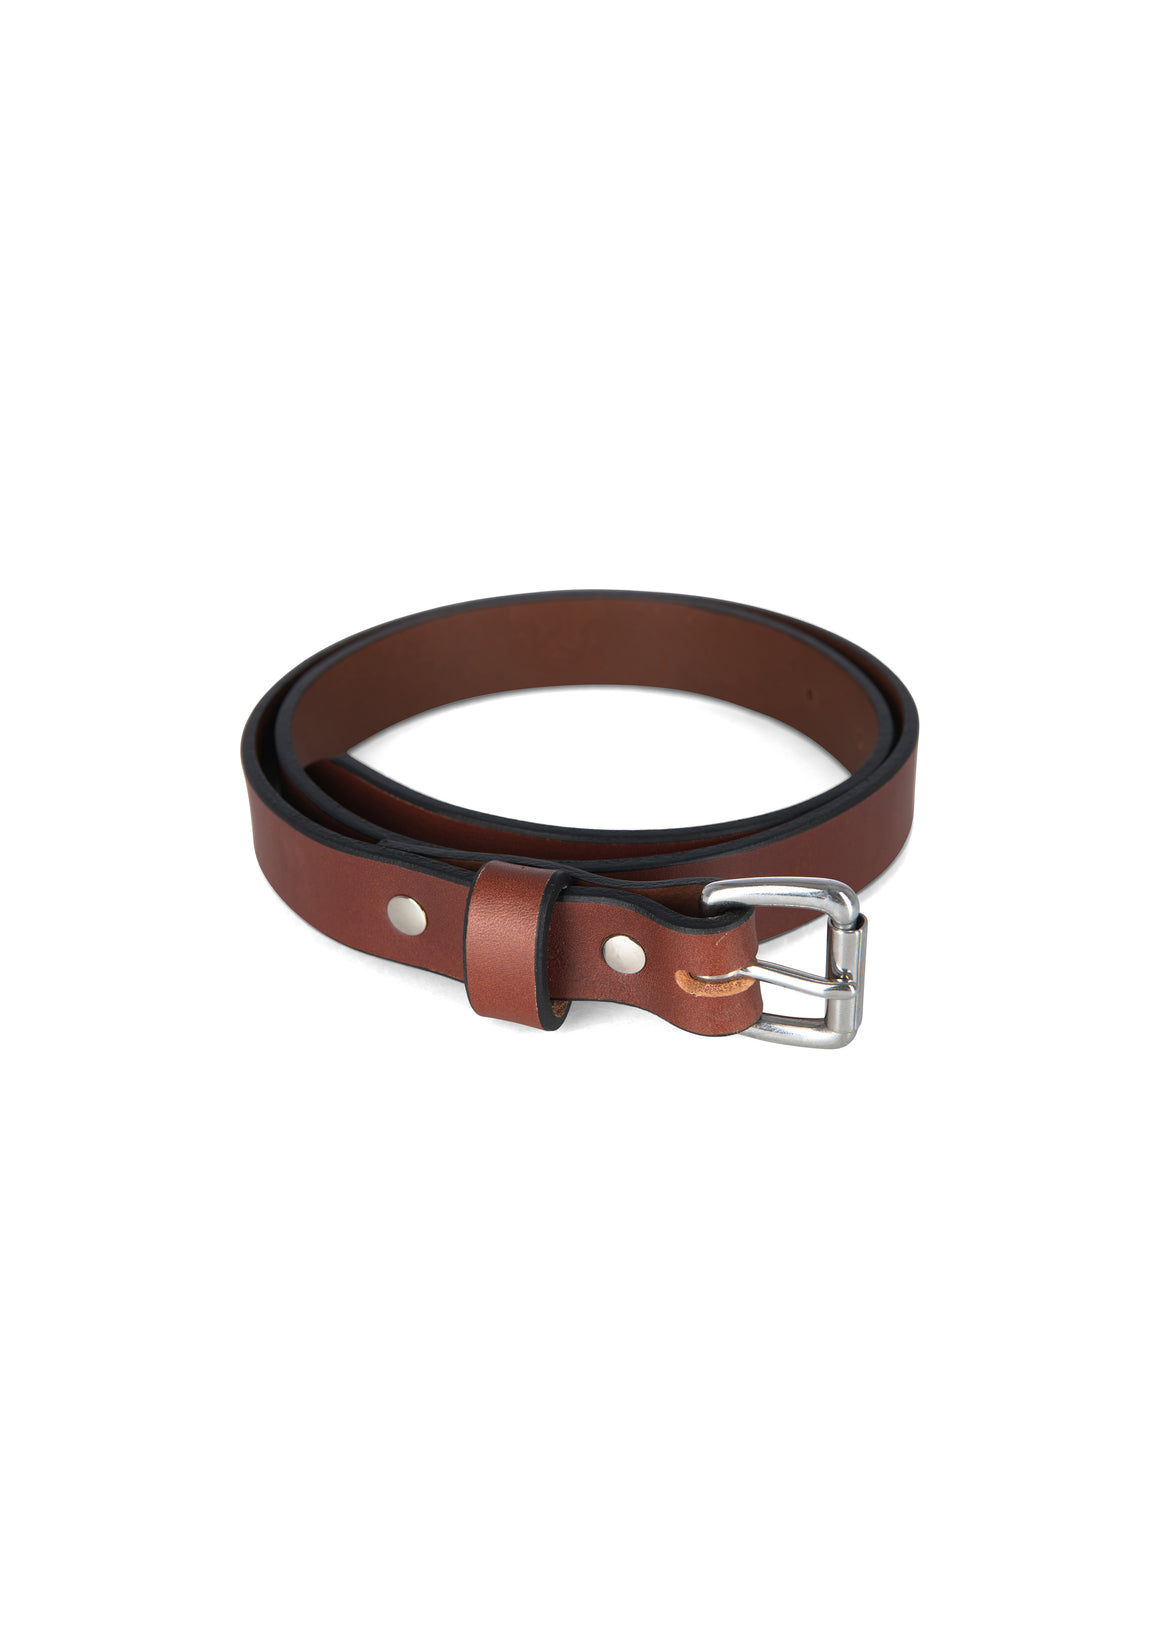 Slim Belt in Chestnut - Philistine